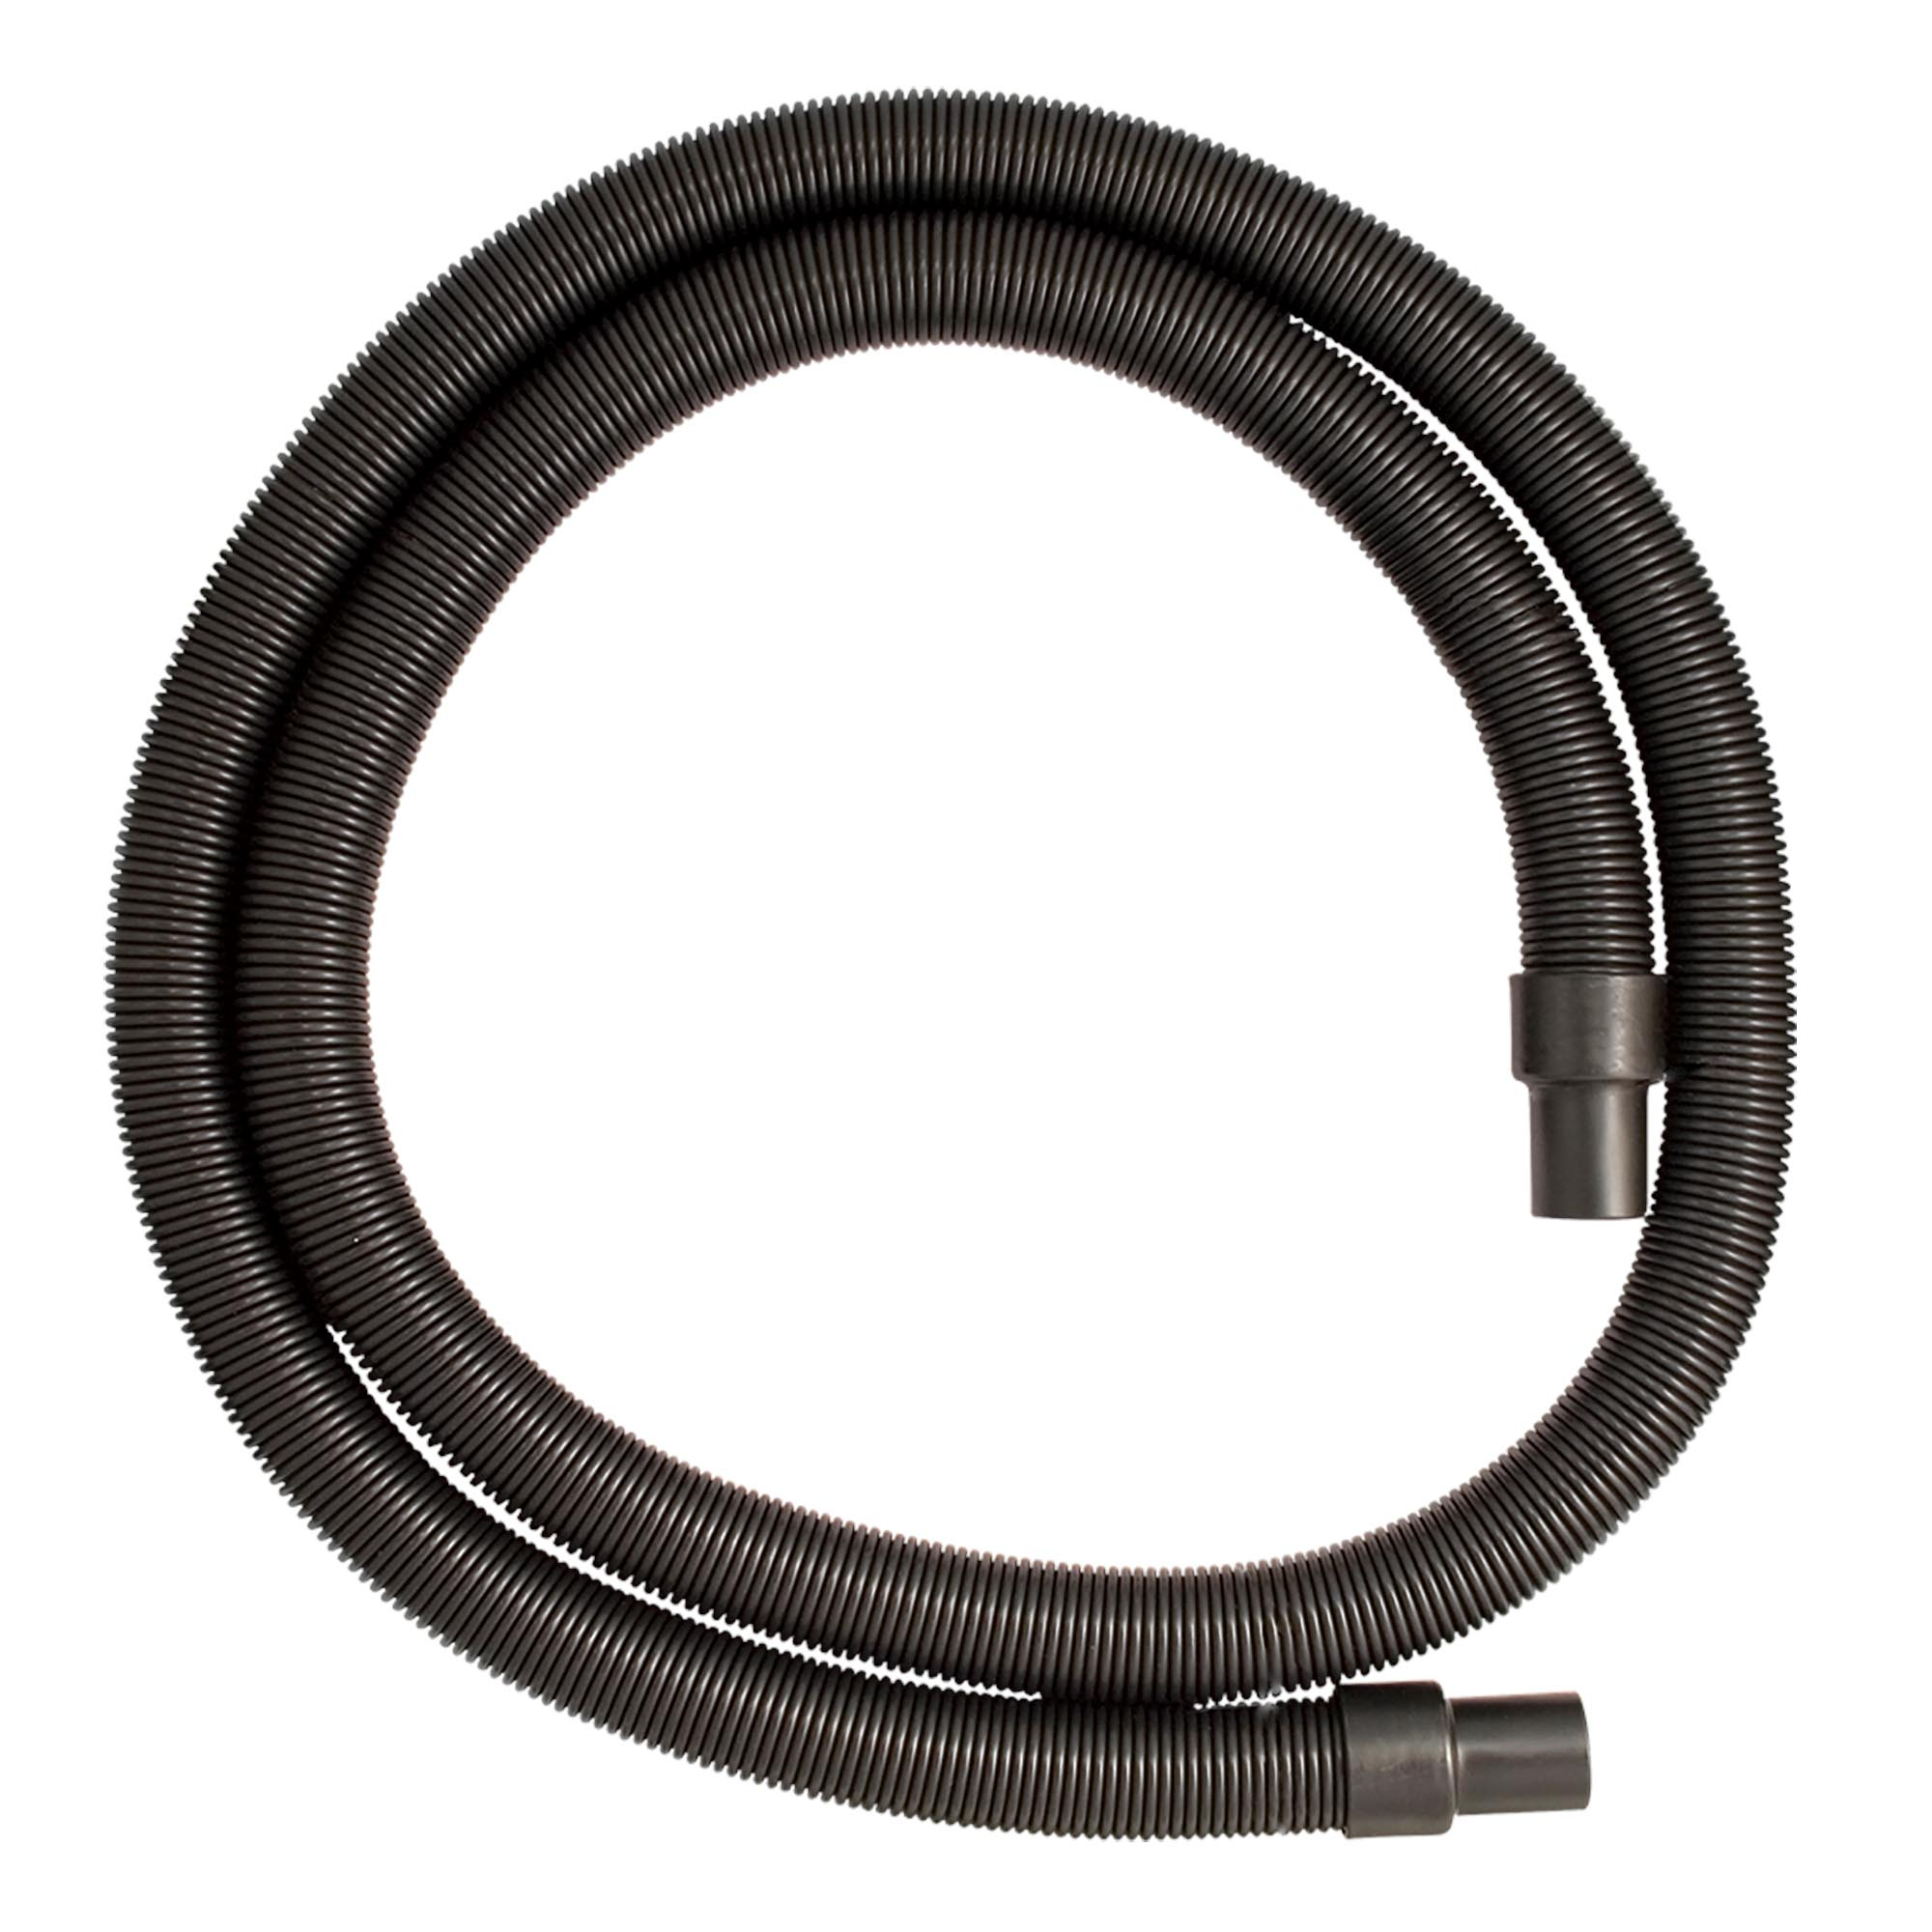 Model 6583 Replacement Vacuum Hose